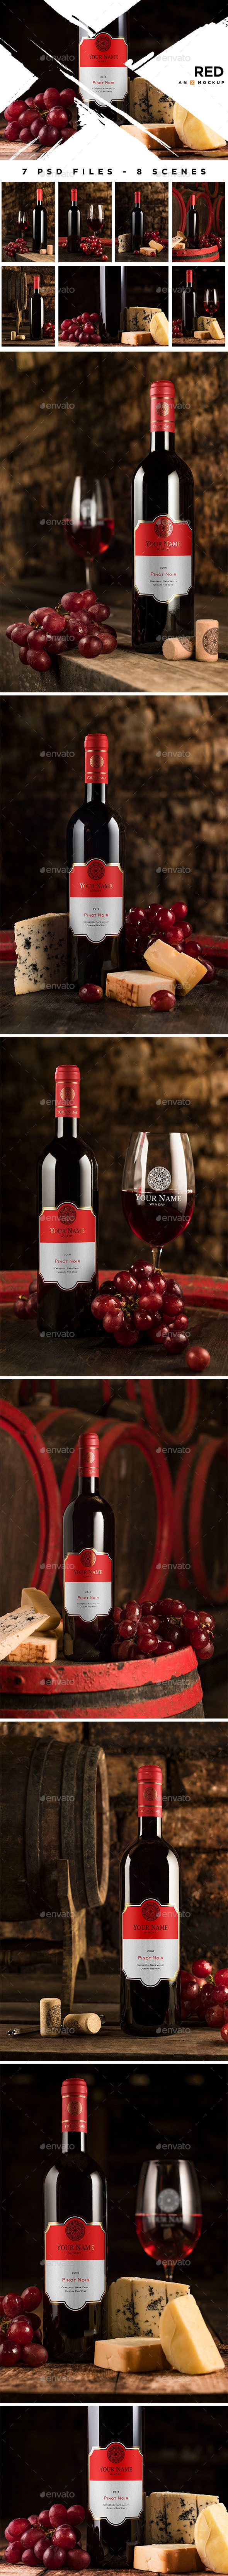 Cellar Wine Mockup - Red Wine - Product Mock-Ups Graphics